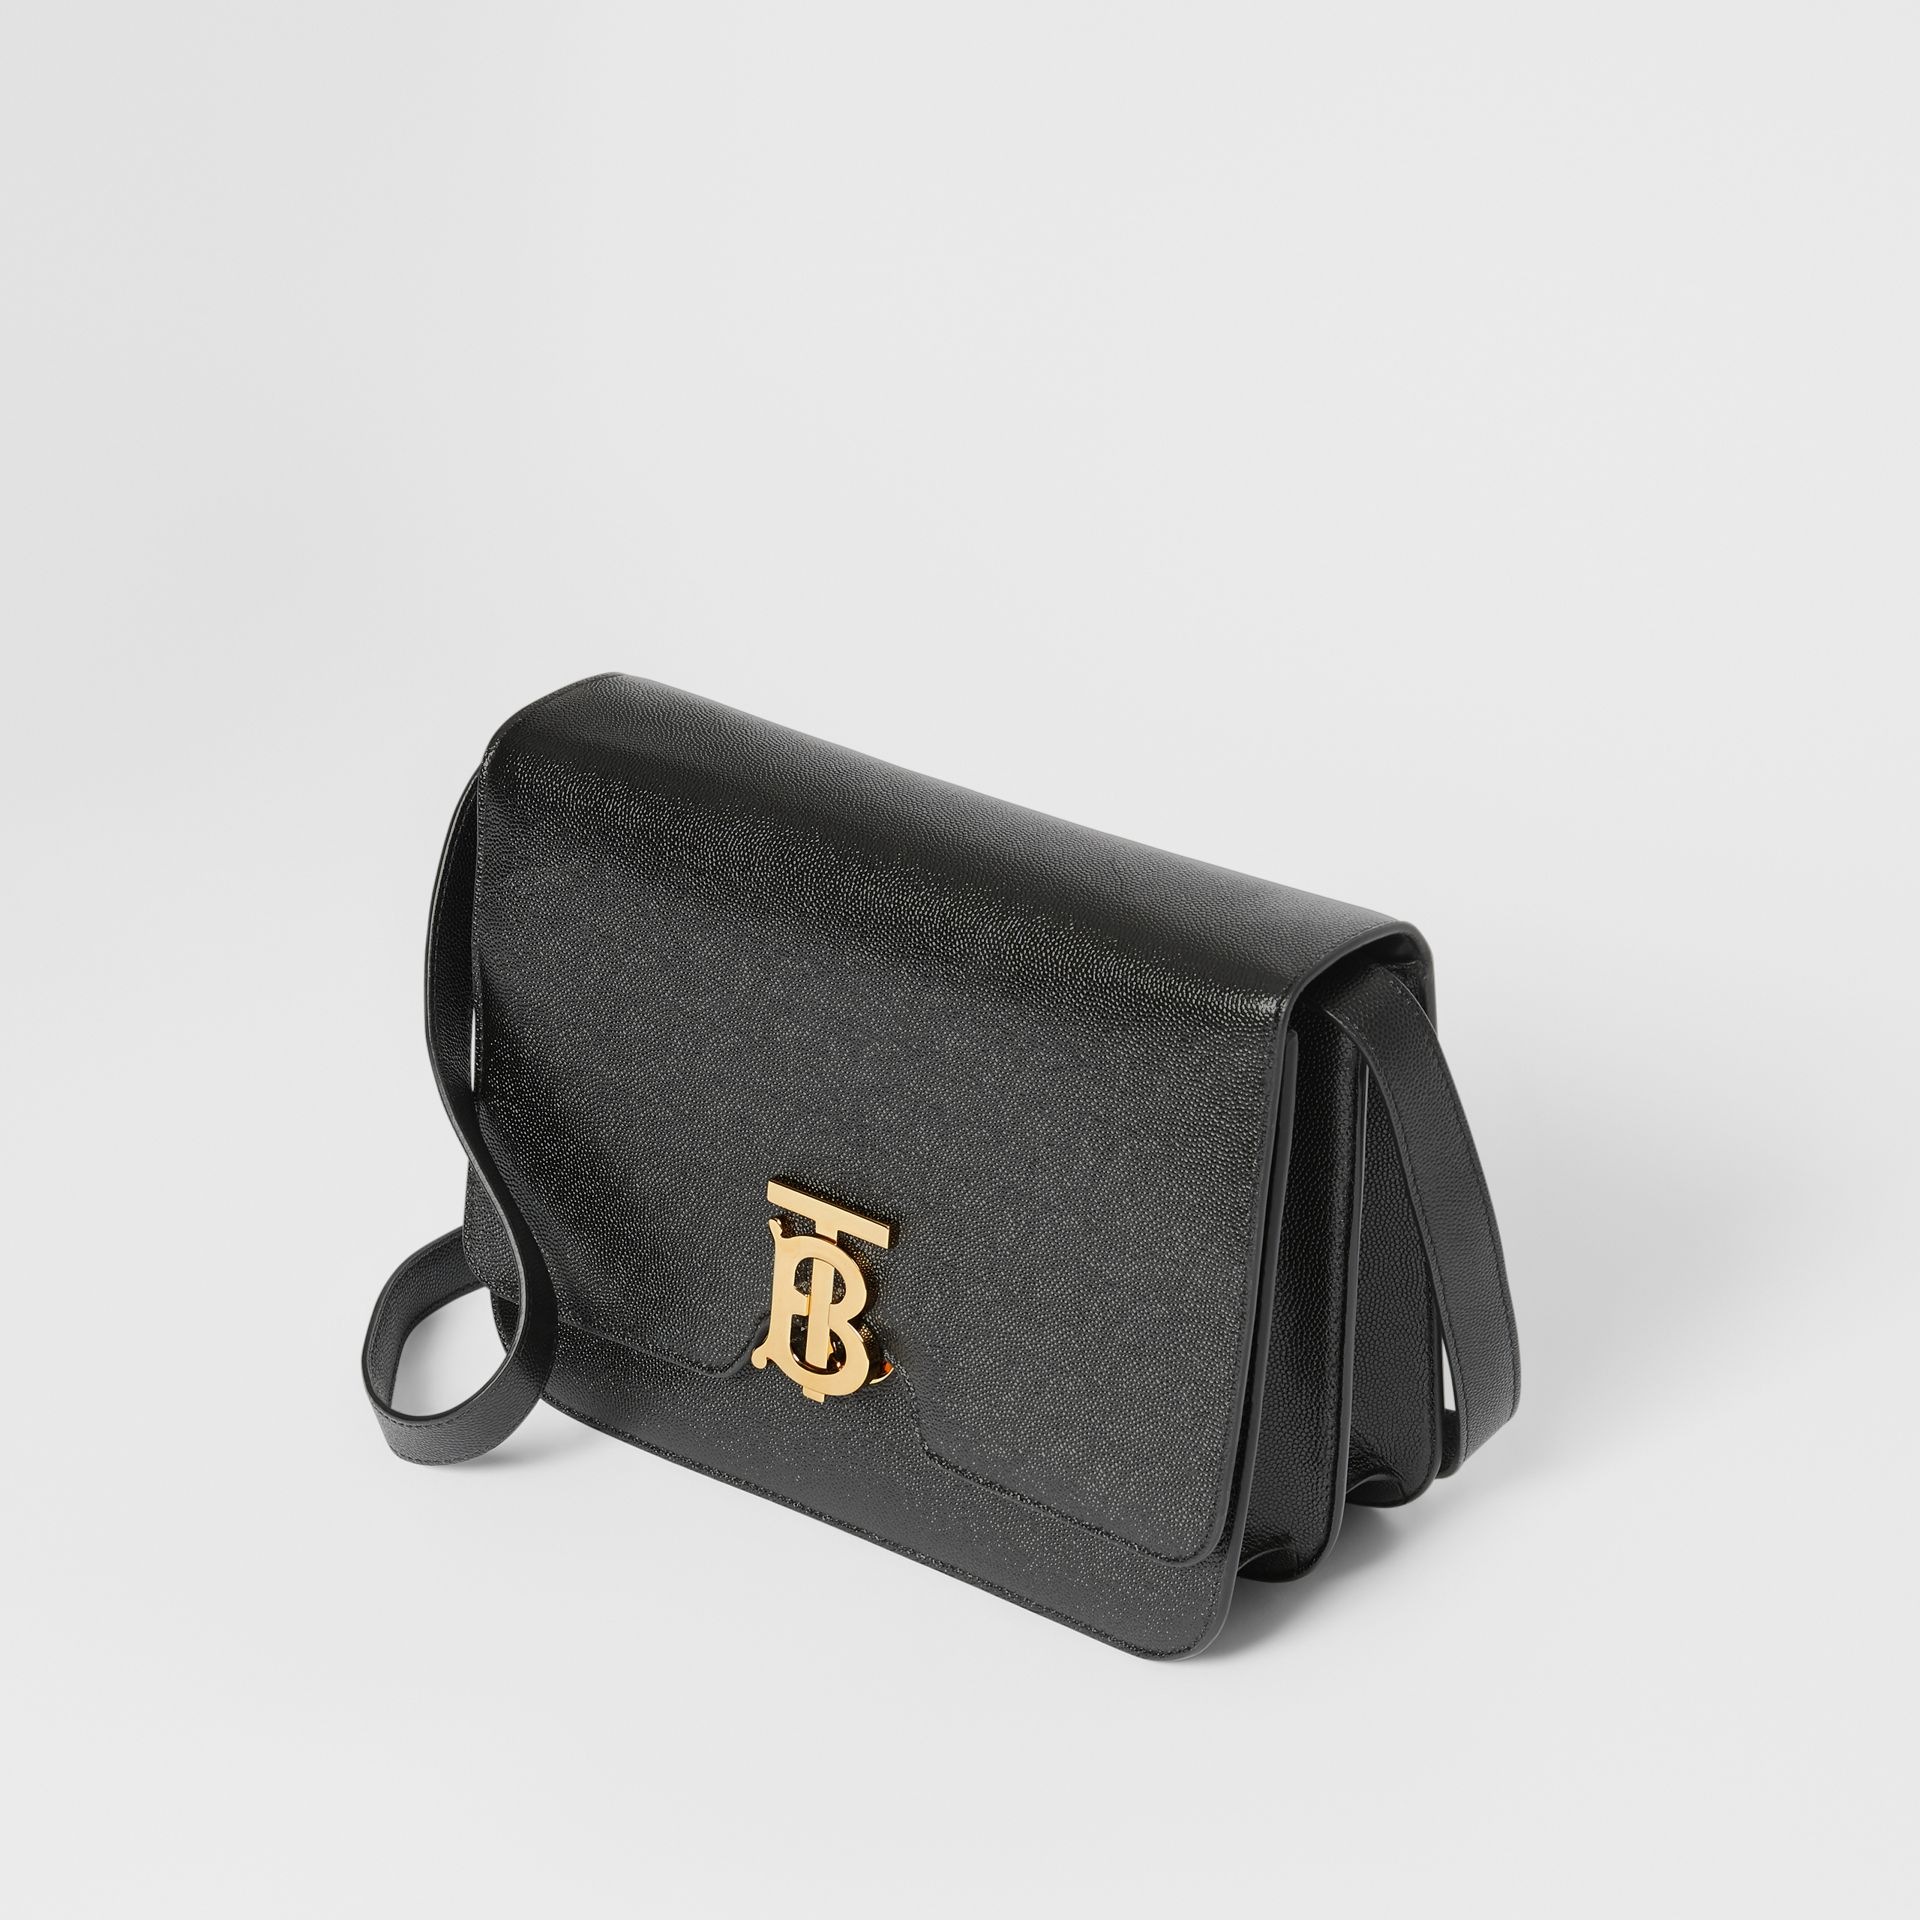 Medium Grainy Leather TB Bag in Black - Women | Burberry Australia - gallery image 3